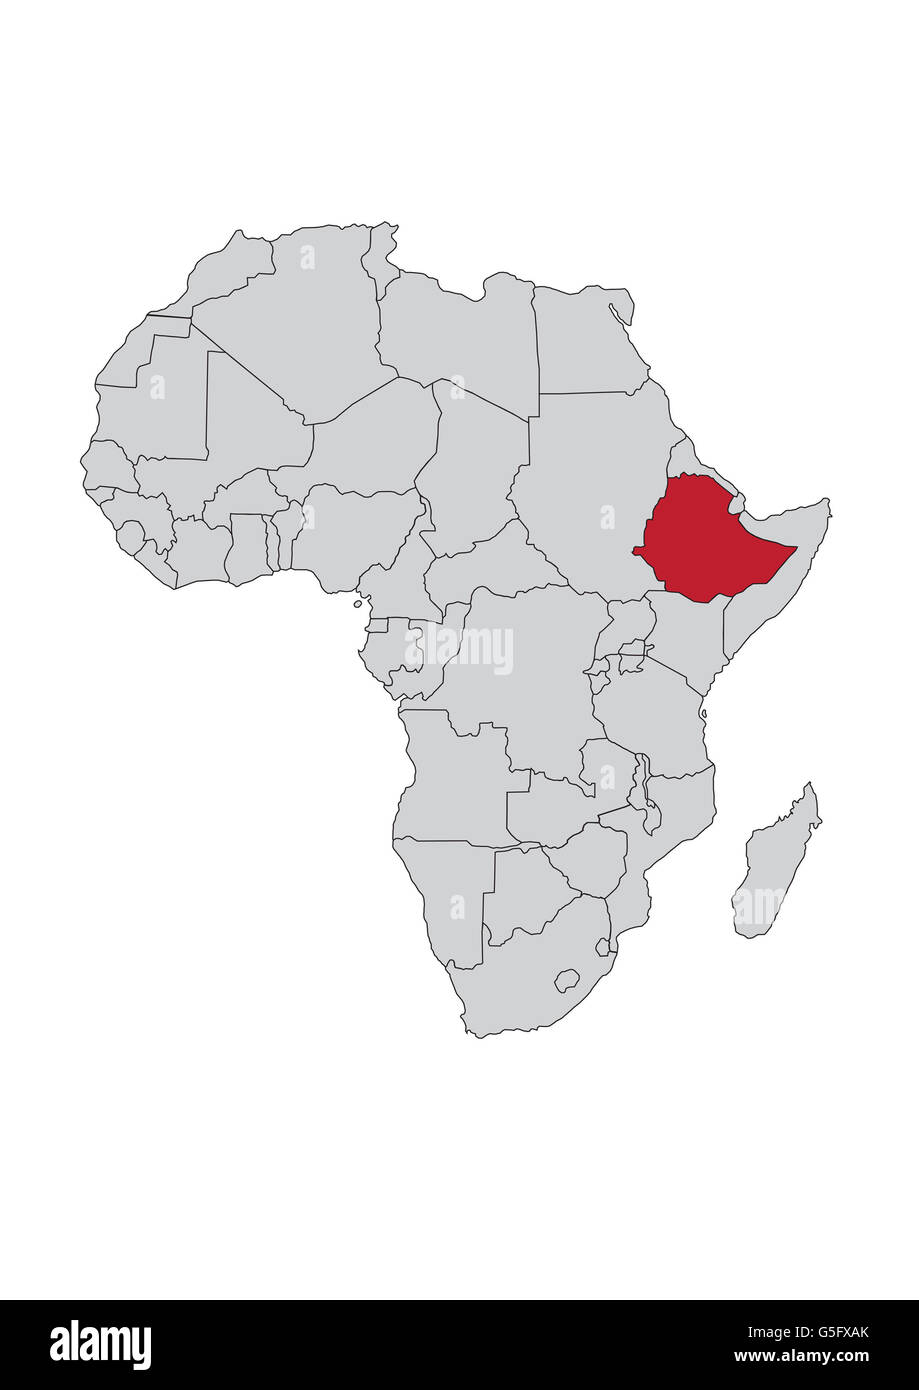 Map of Africa, Ethiopia Stock Photo: 106685451 - Alamy